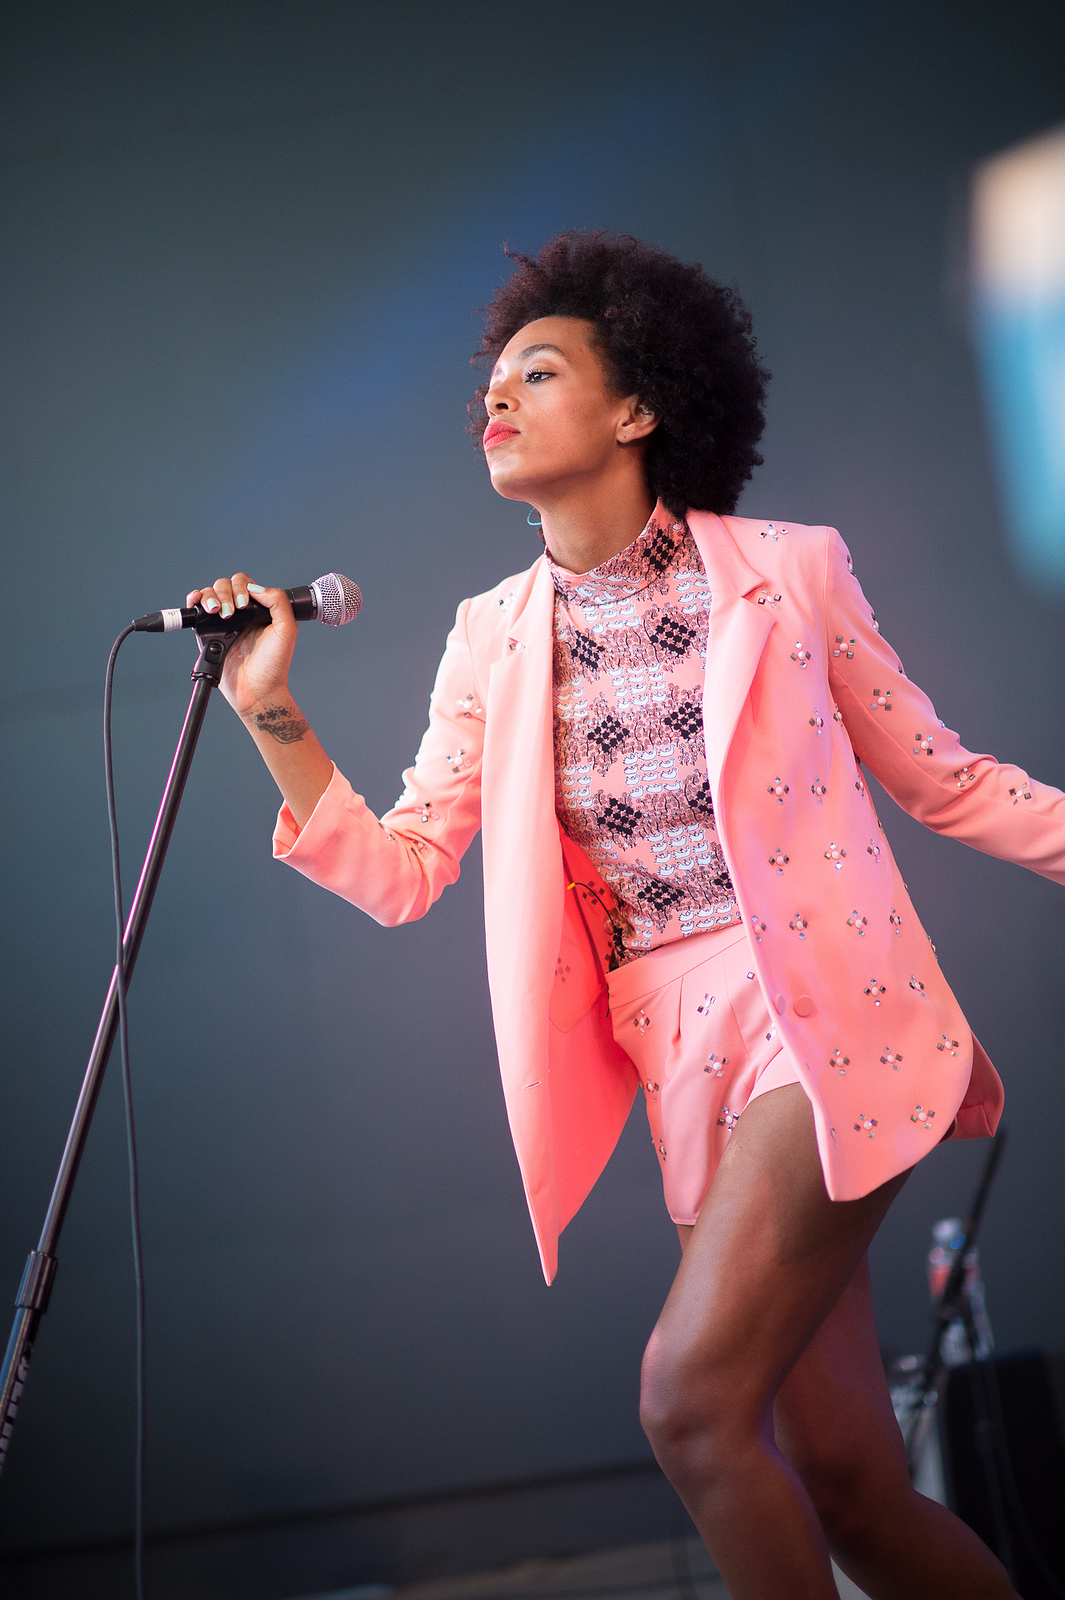 Another shot of Solange at Stubb's because, hey, that's a statue in the making.